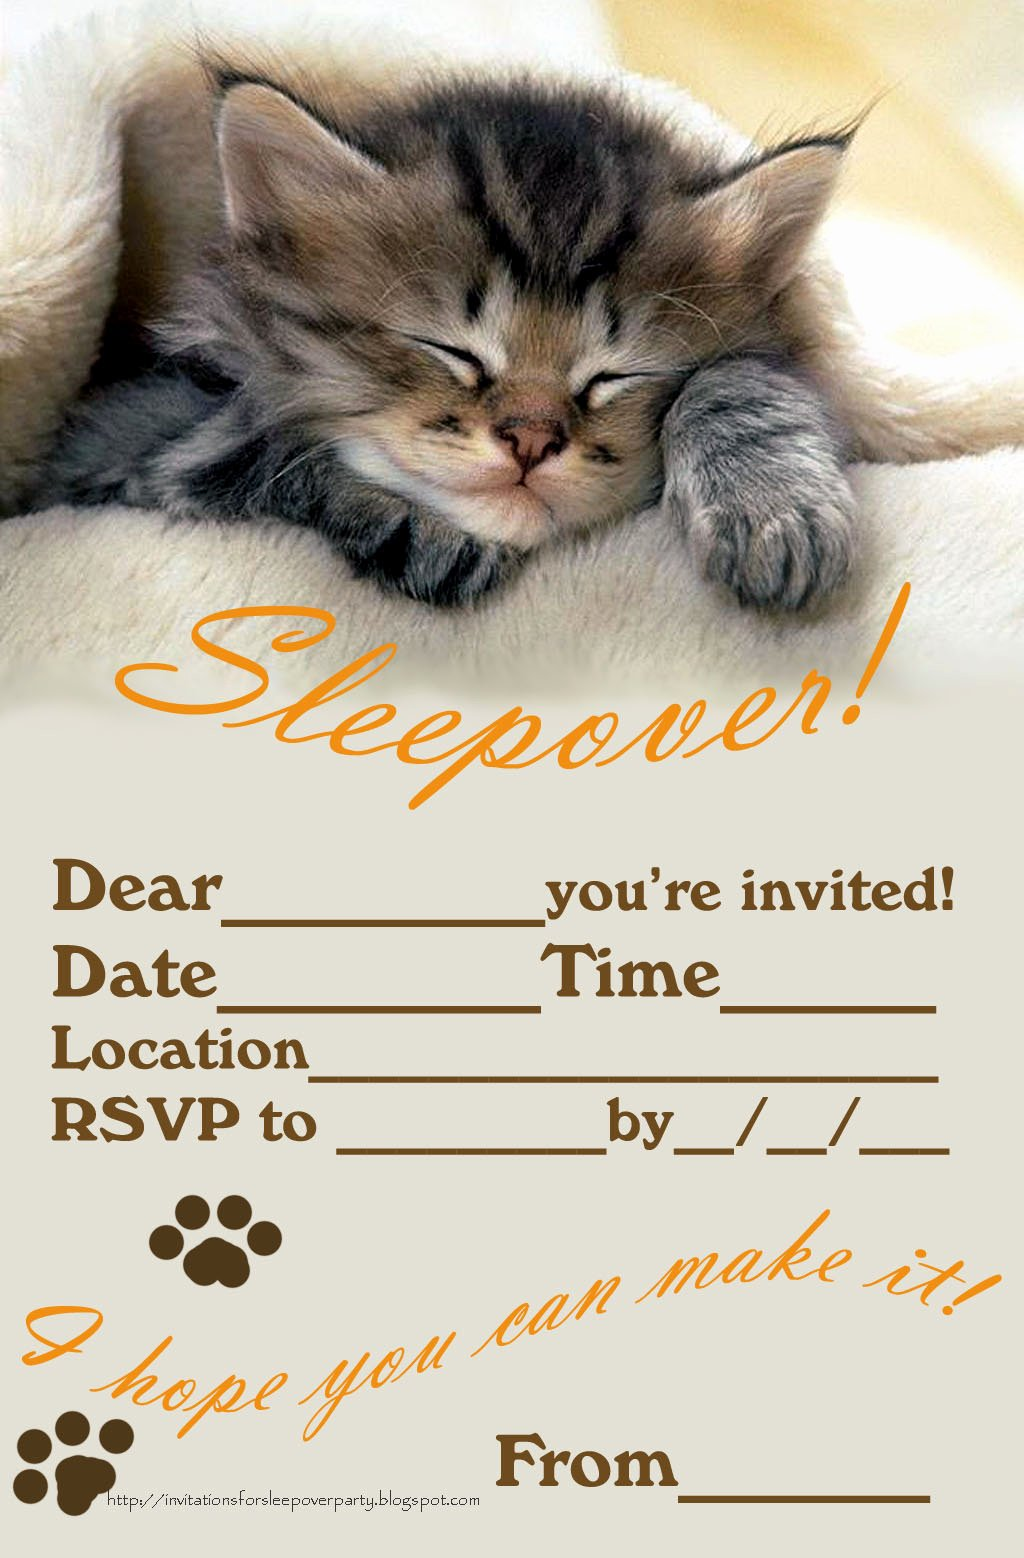 Pajama Party Invitations Free Printable Unique Invitations for Sleepover Party